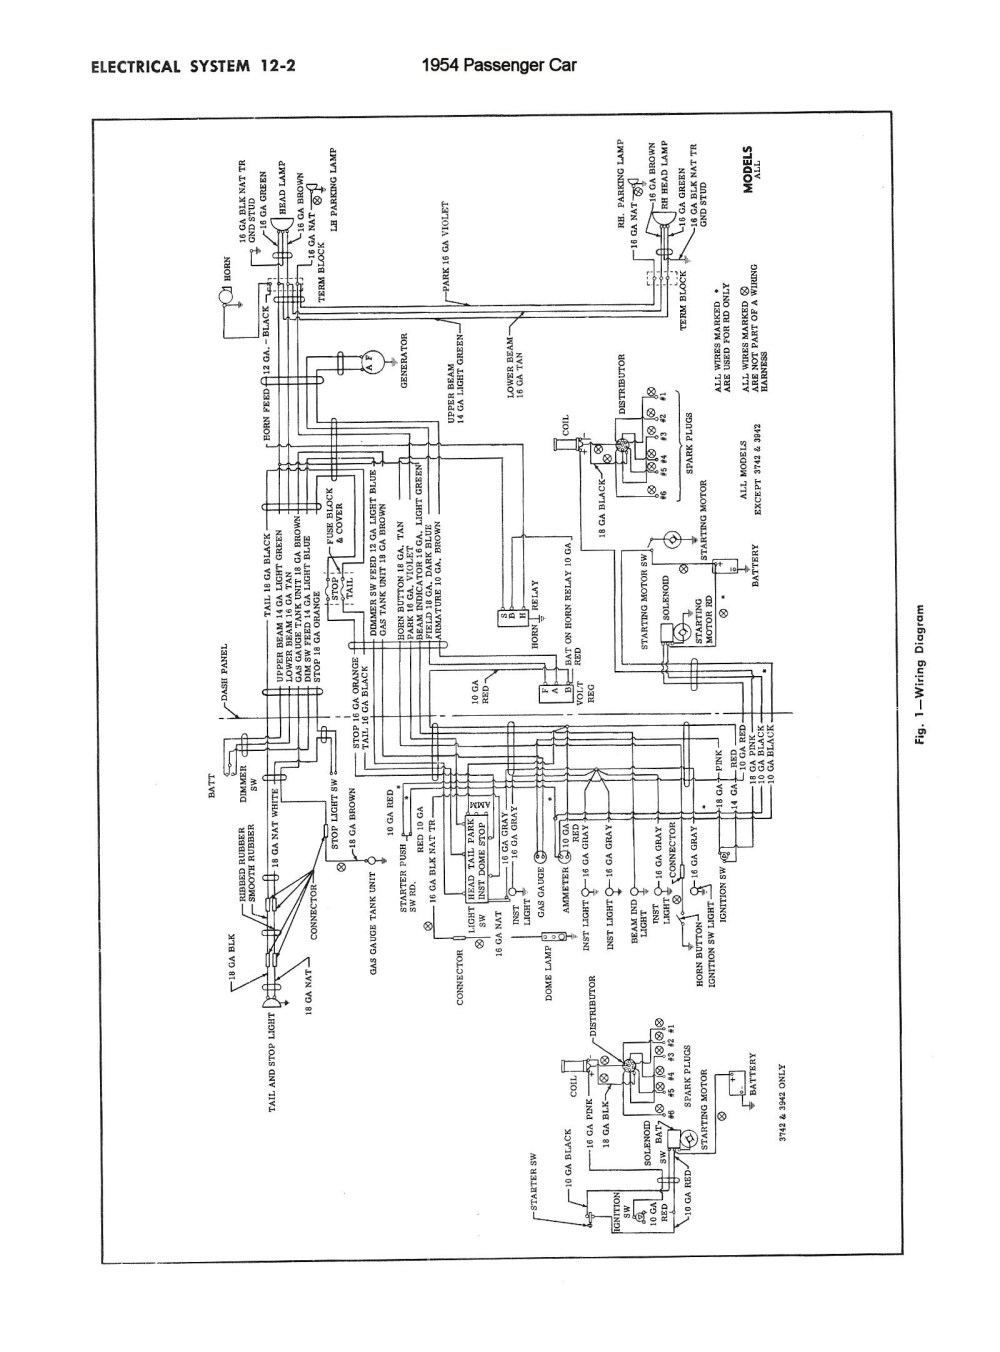 medium resolution of amana refrigerator wiring diagram wiring diagramtest point diagram free download wiring diagram schematic 12006 silverado fuel